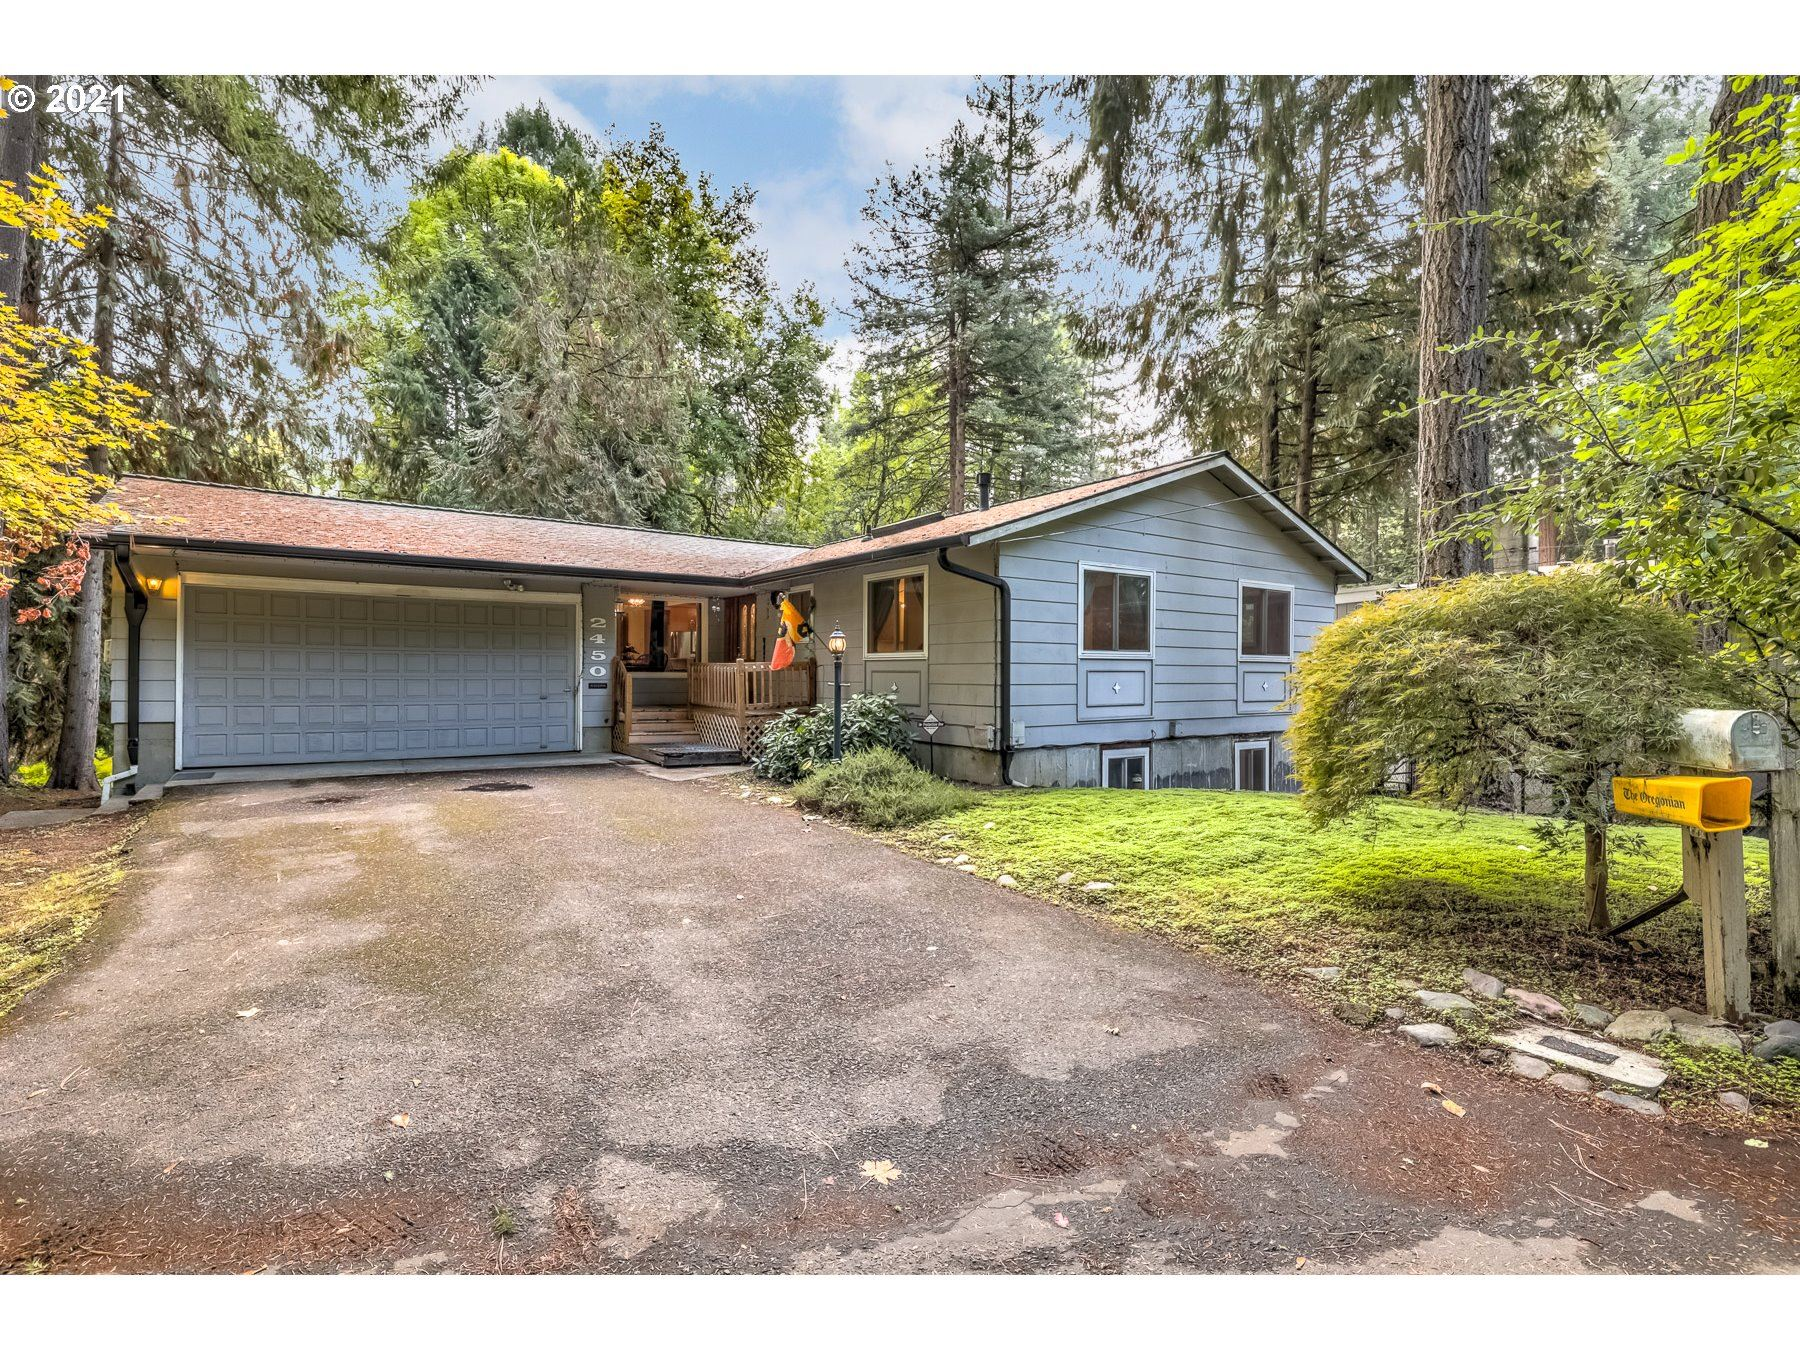 Photo of 2450 SW 178TH AVE, Beaverton, OR 97003 (MLS # 21665422)